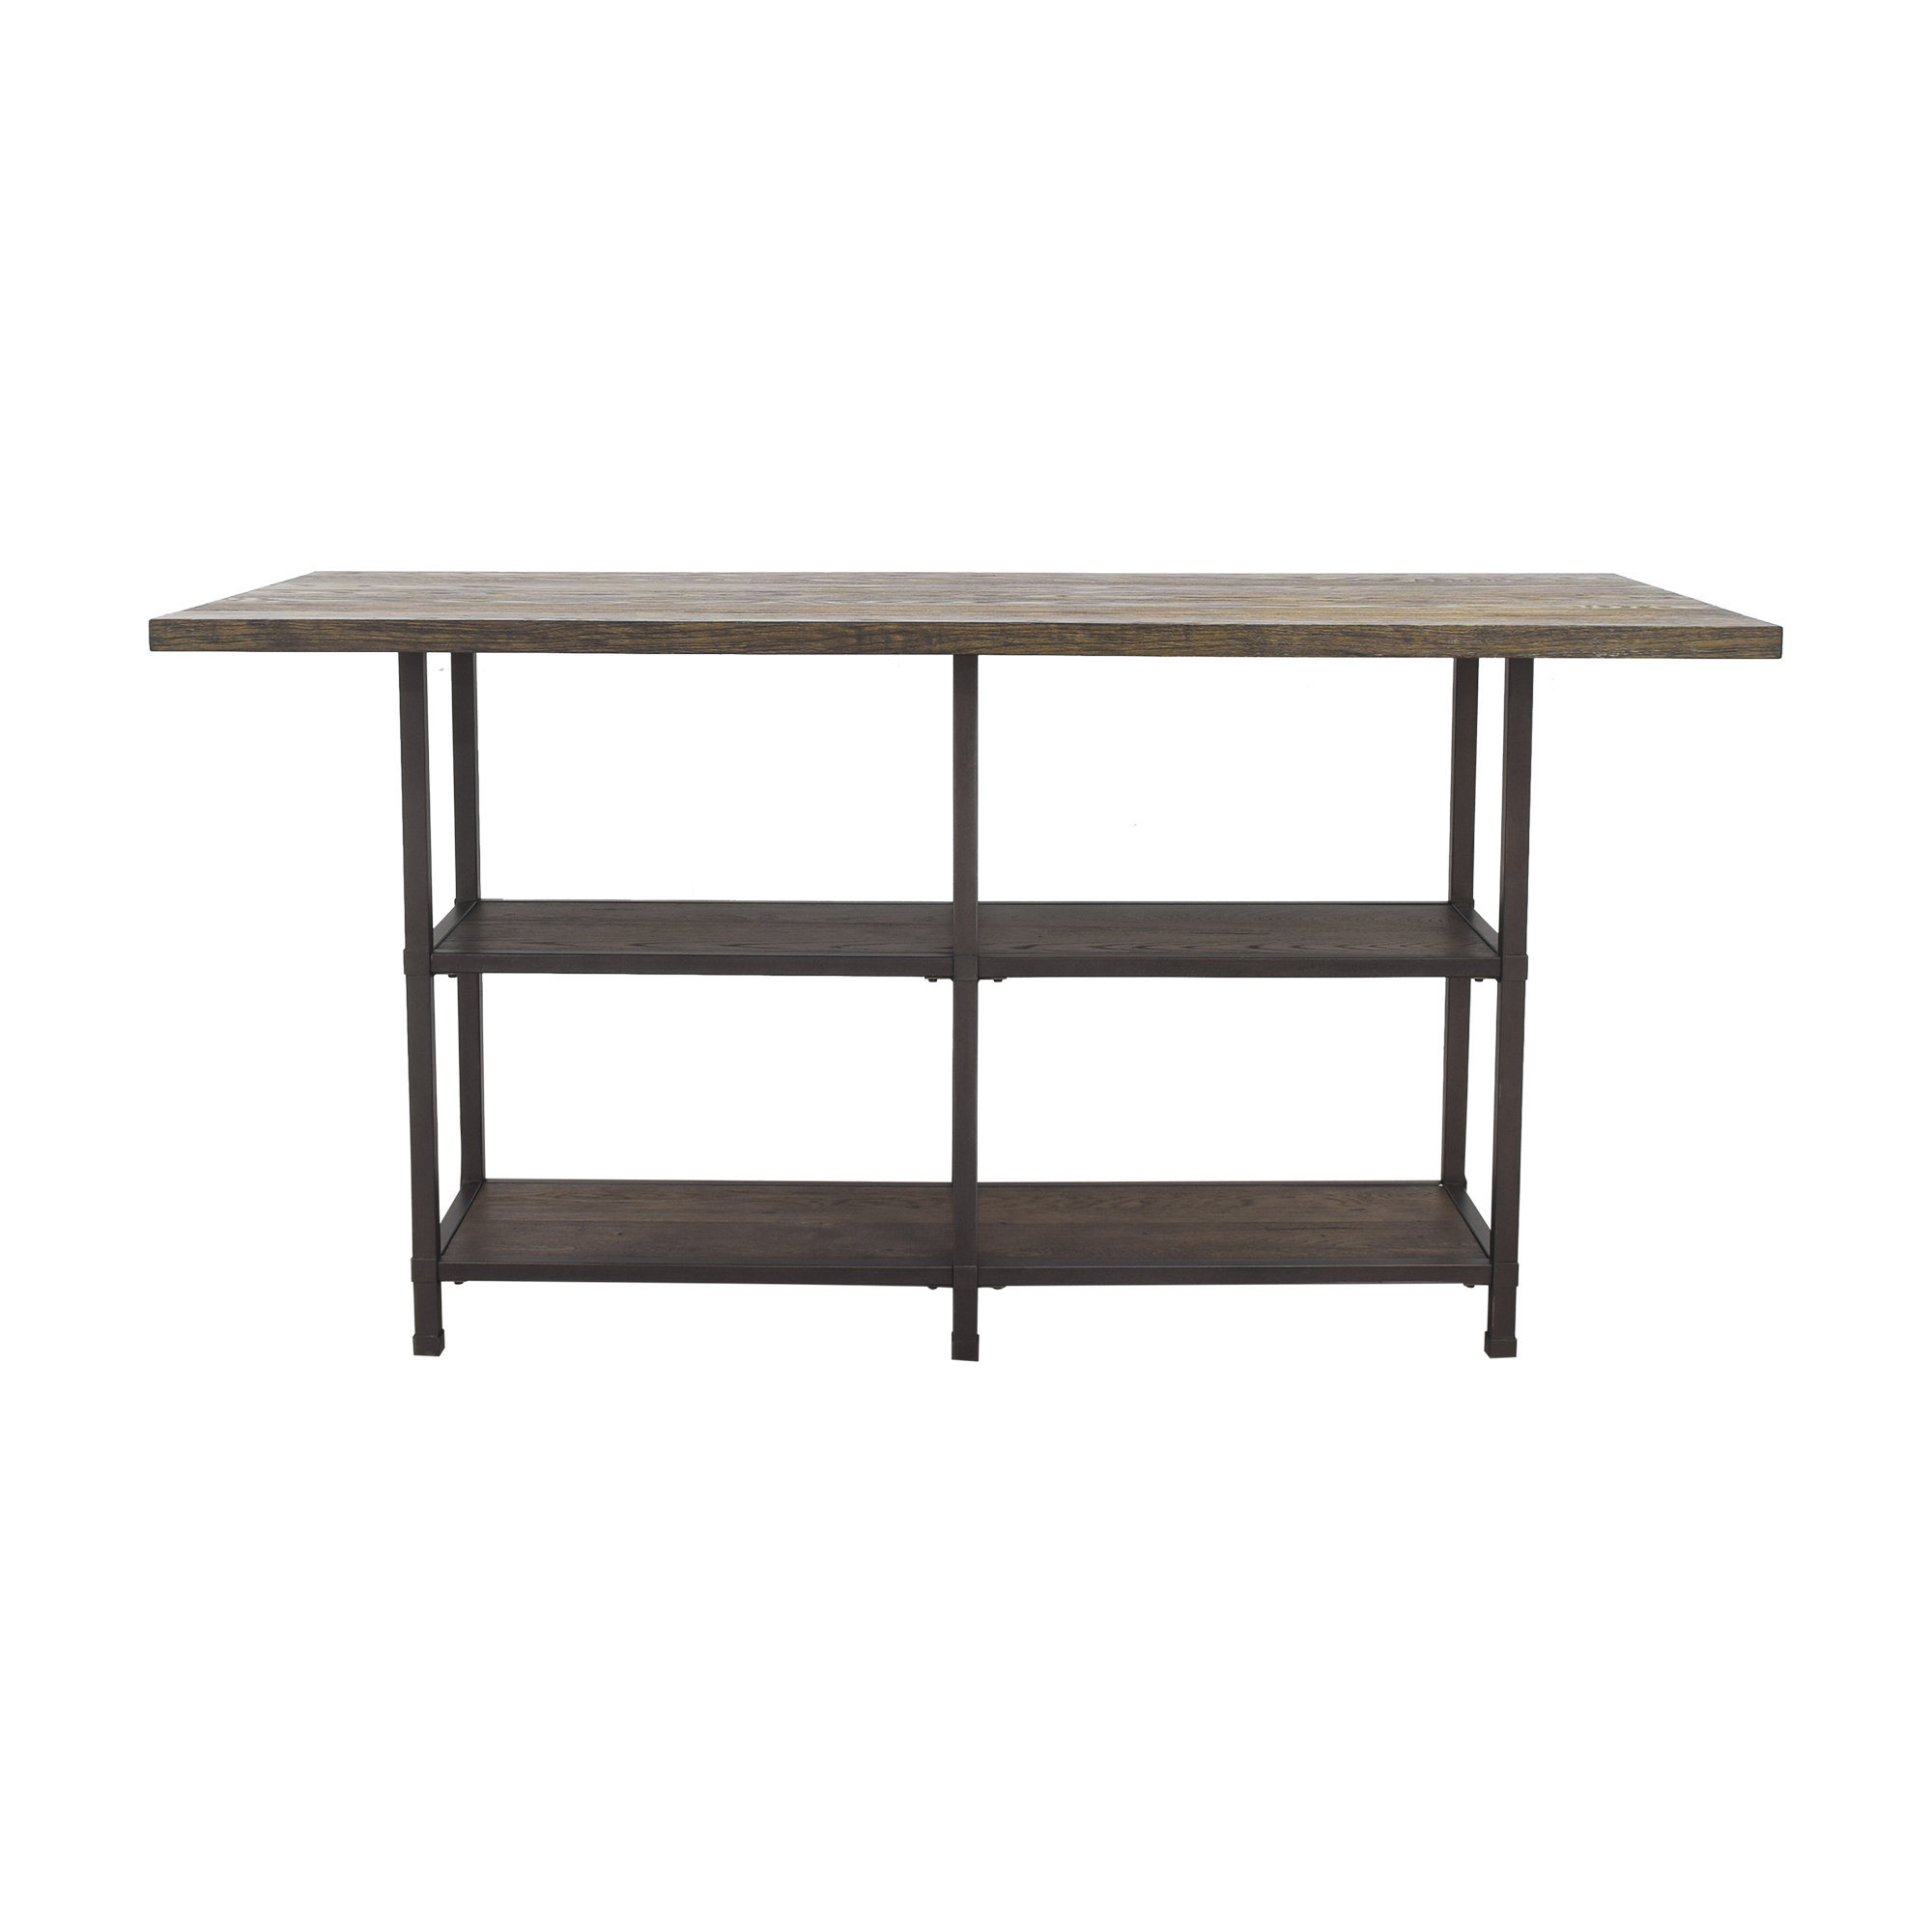 Wayfair Wayfair Greyleigh Cairo Dining Table coupon